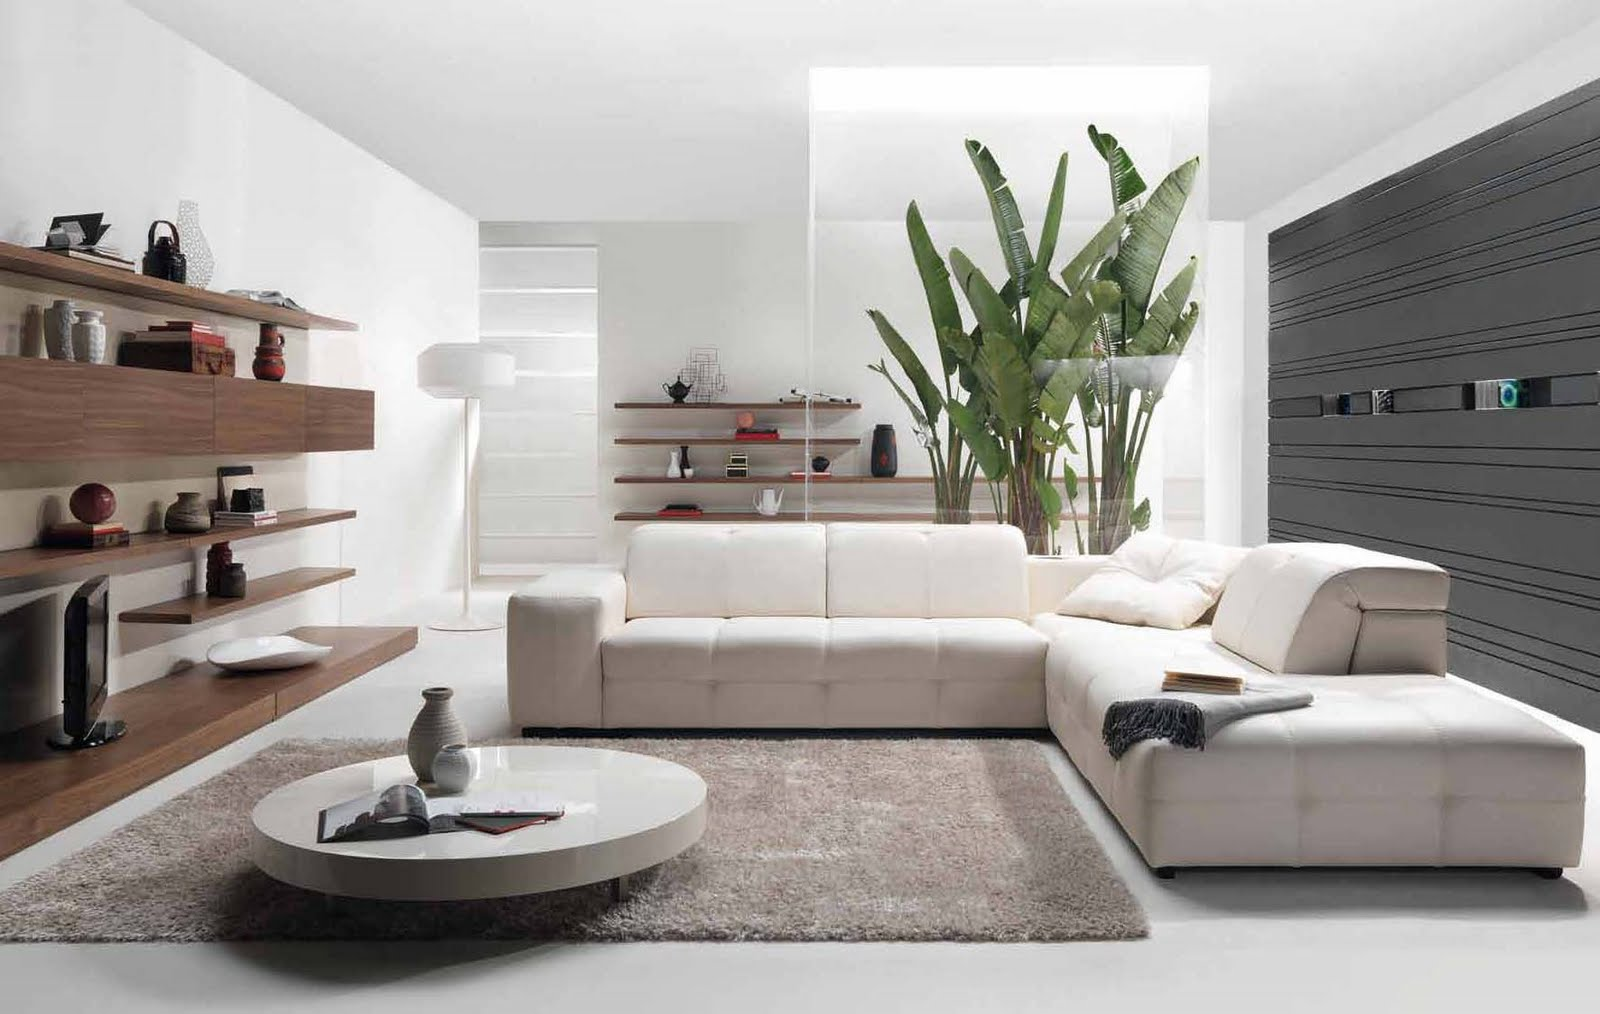 Modern home interior furniture designs diy ideas for Home living room interior design ideas